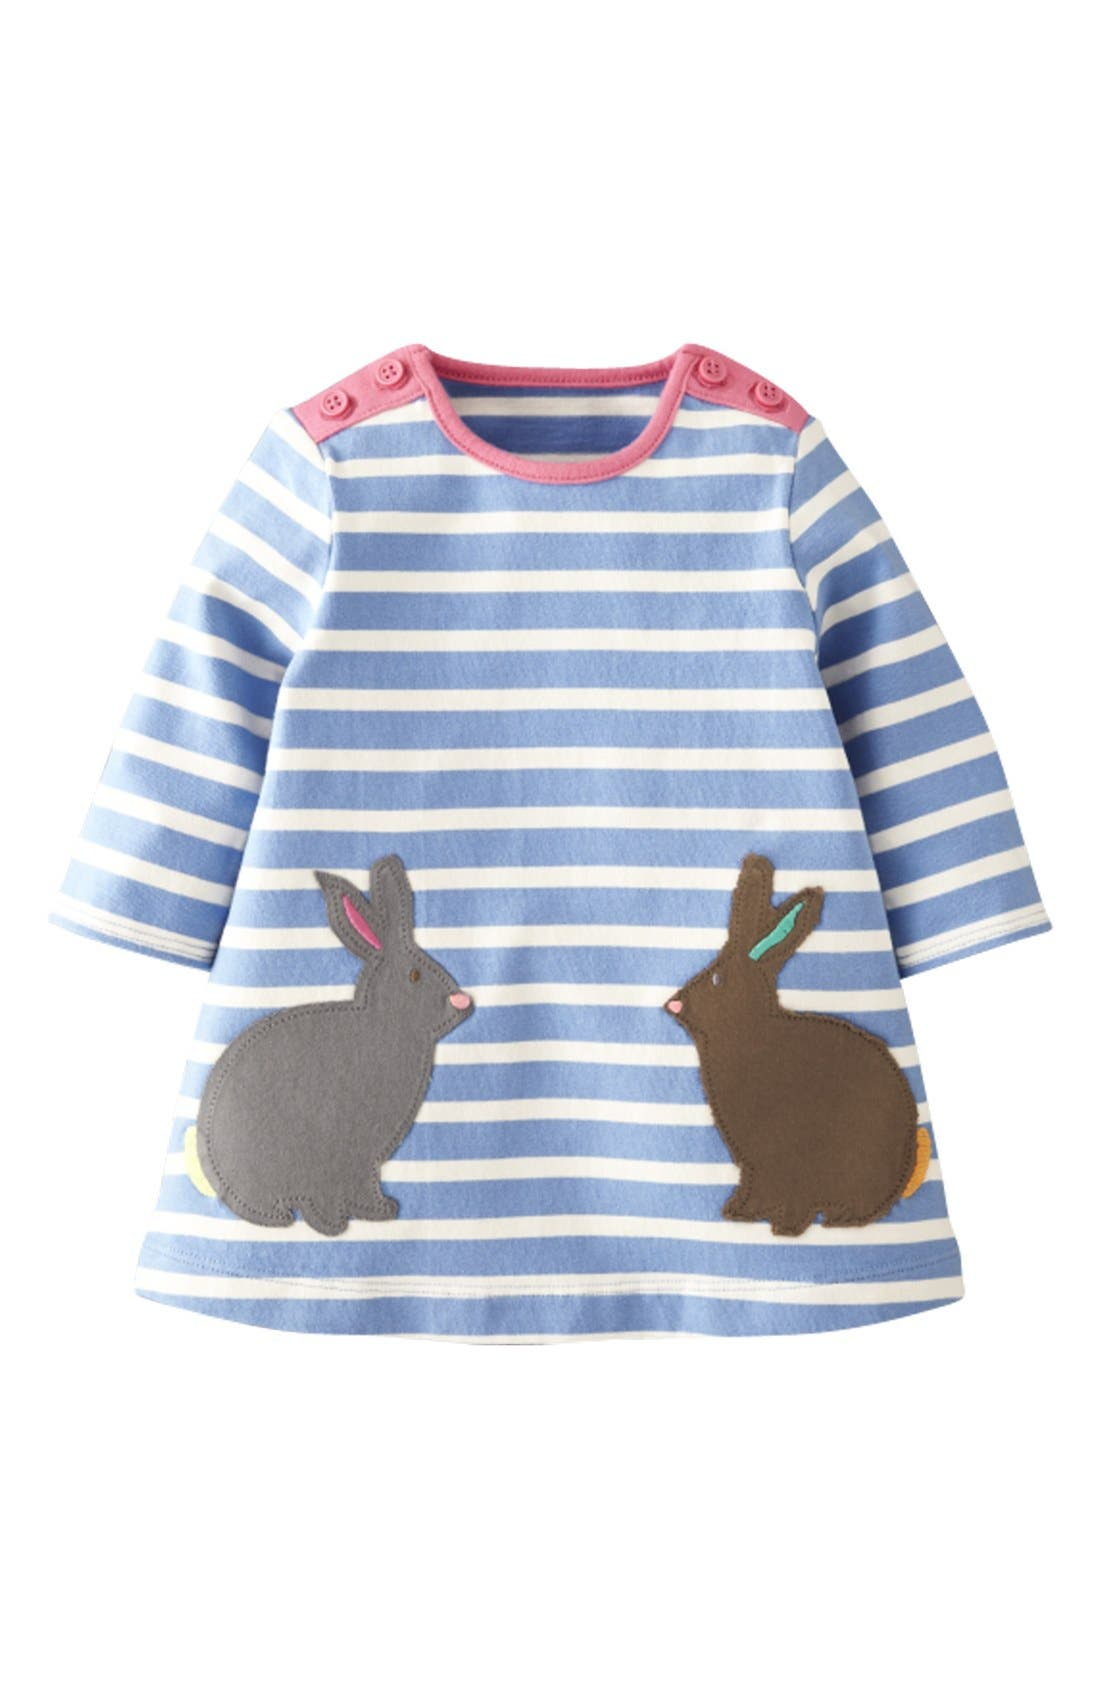 Main Image - Mini Boden Stripe Jersey Dress (Baby Girls)